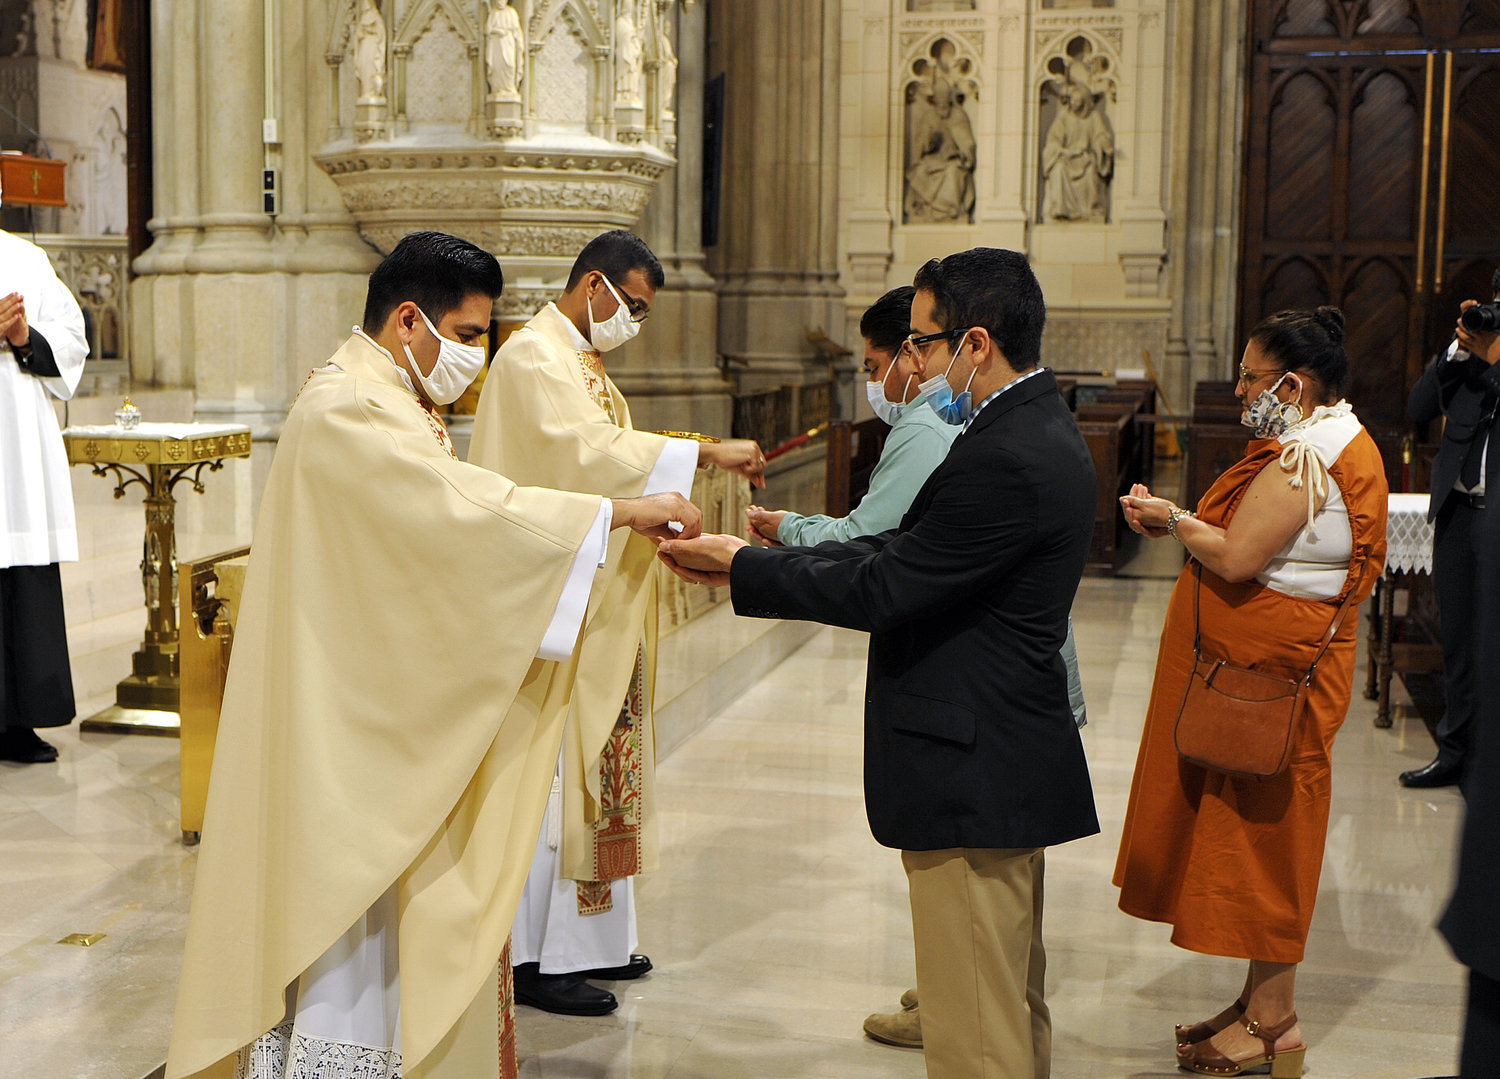 The two new priests distribute Communion to the faithful.